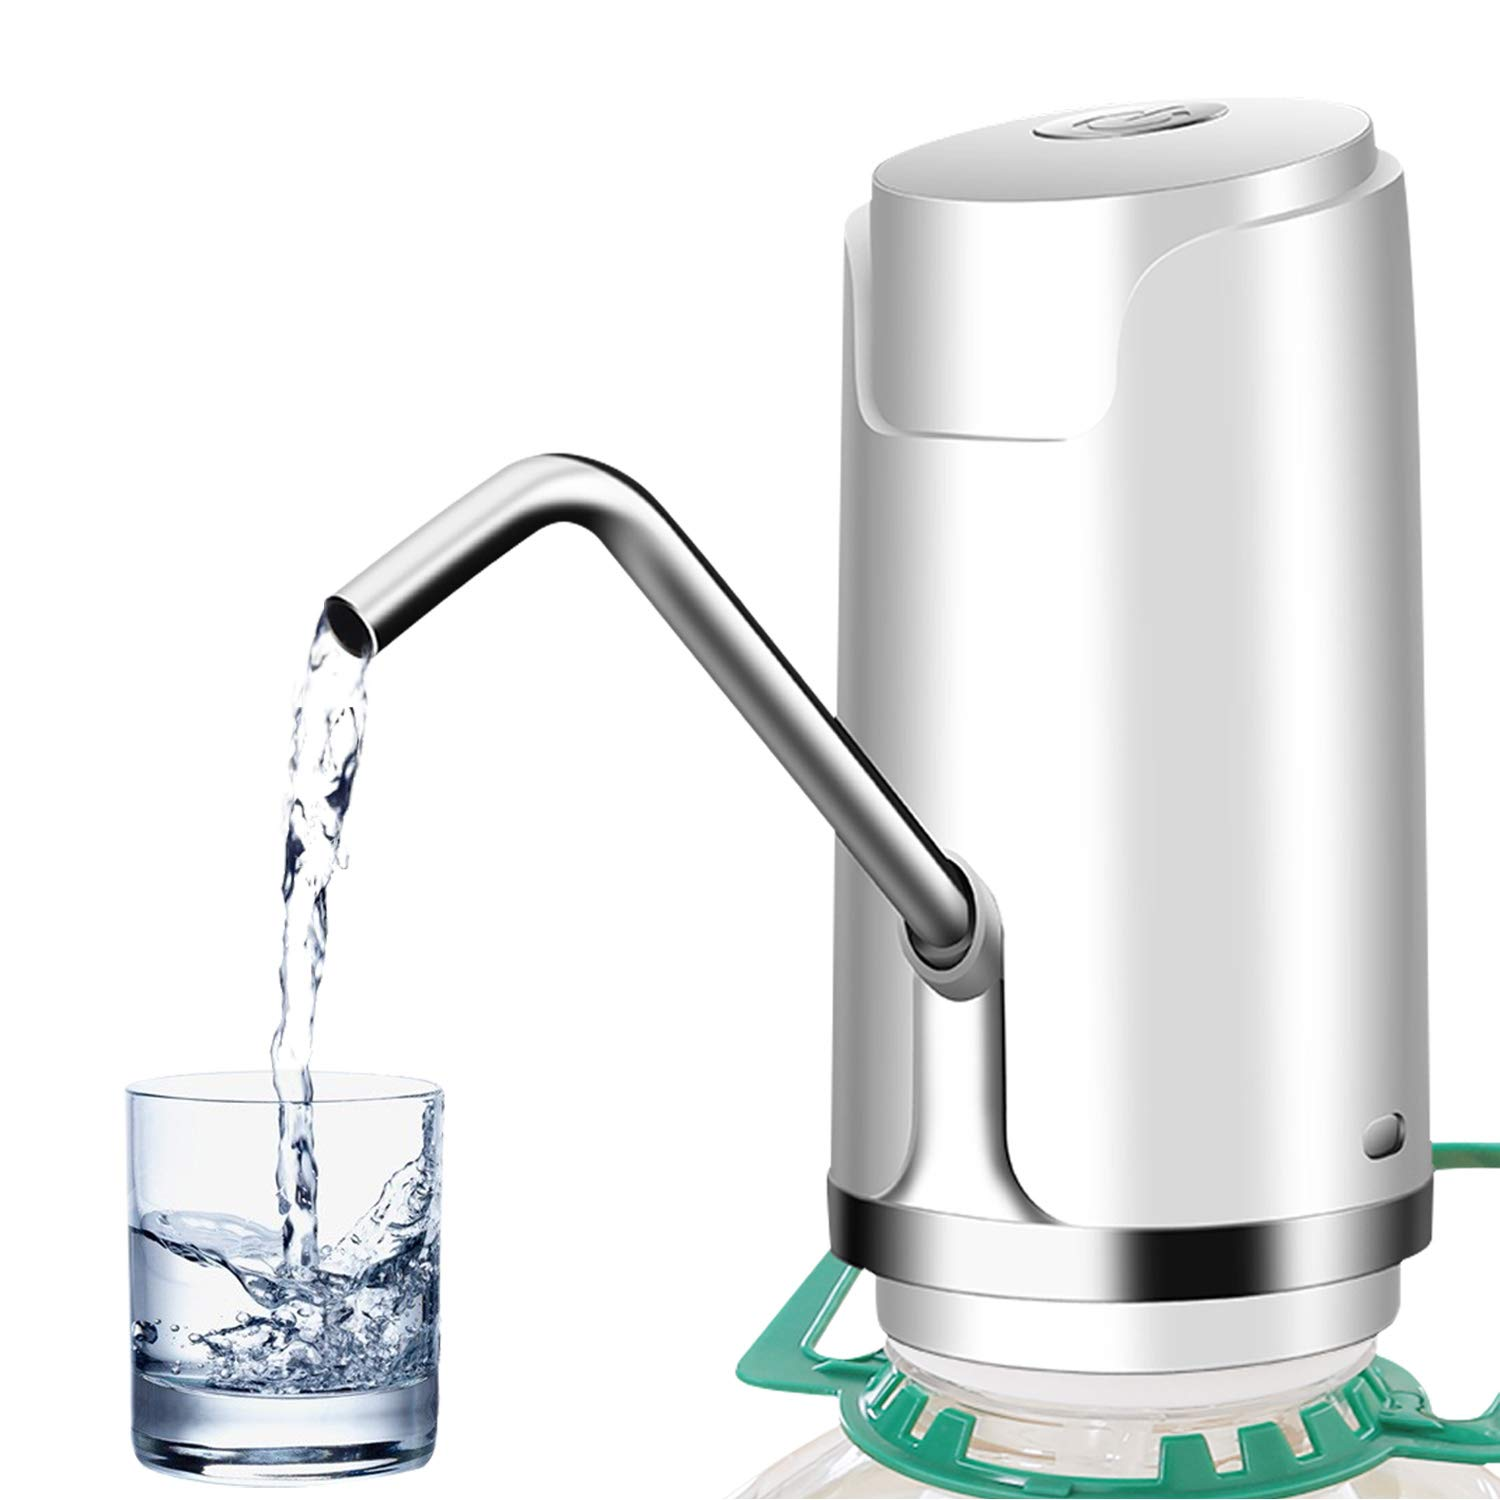 Bottled Water Pump, Abedoe Portable Barreled Water Electric Automatic Drinking Water Pump Dispenser with Switch Button, USB Powered, for Home and Office